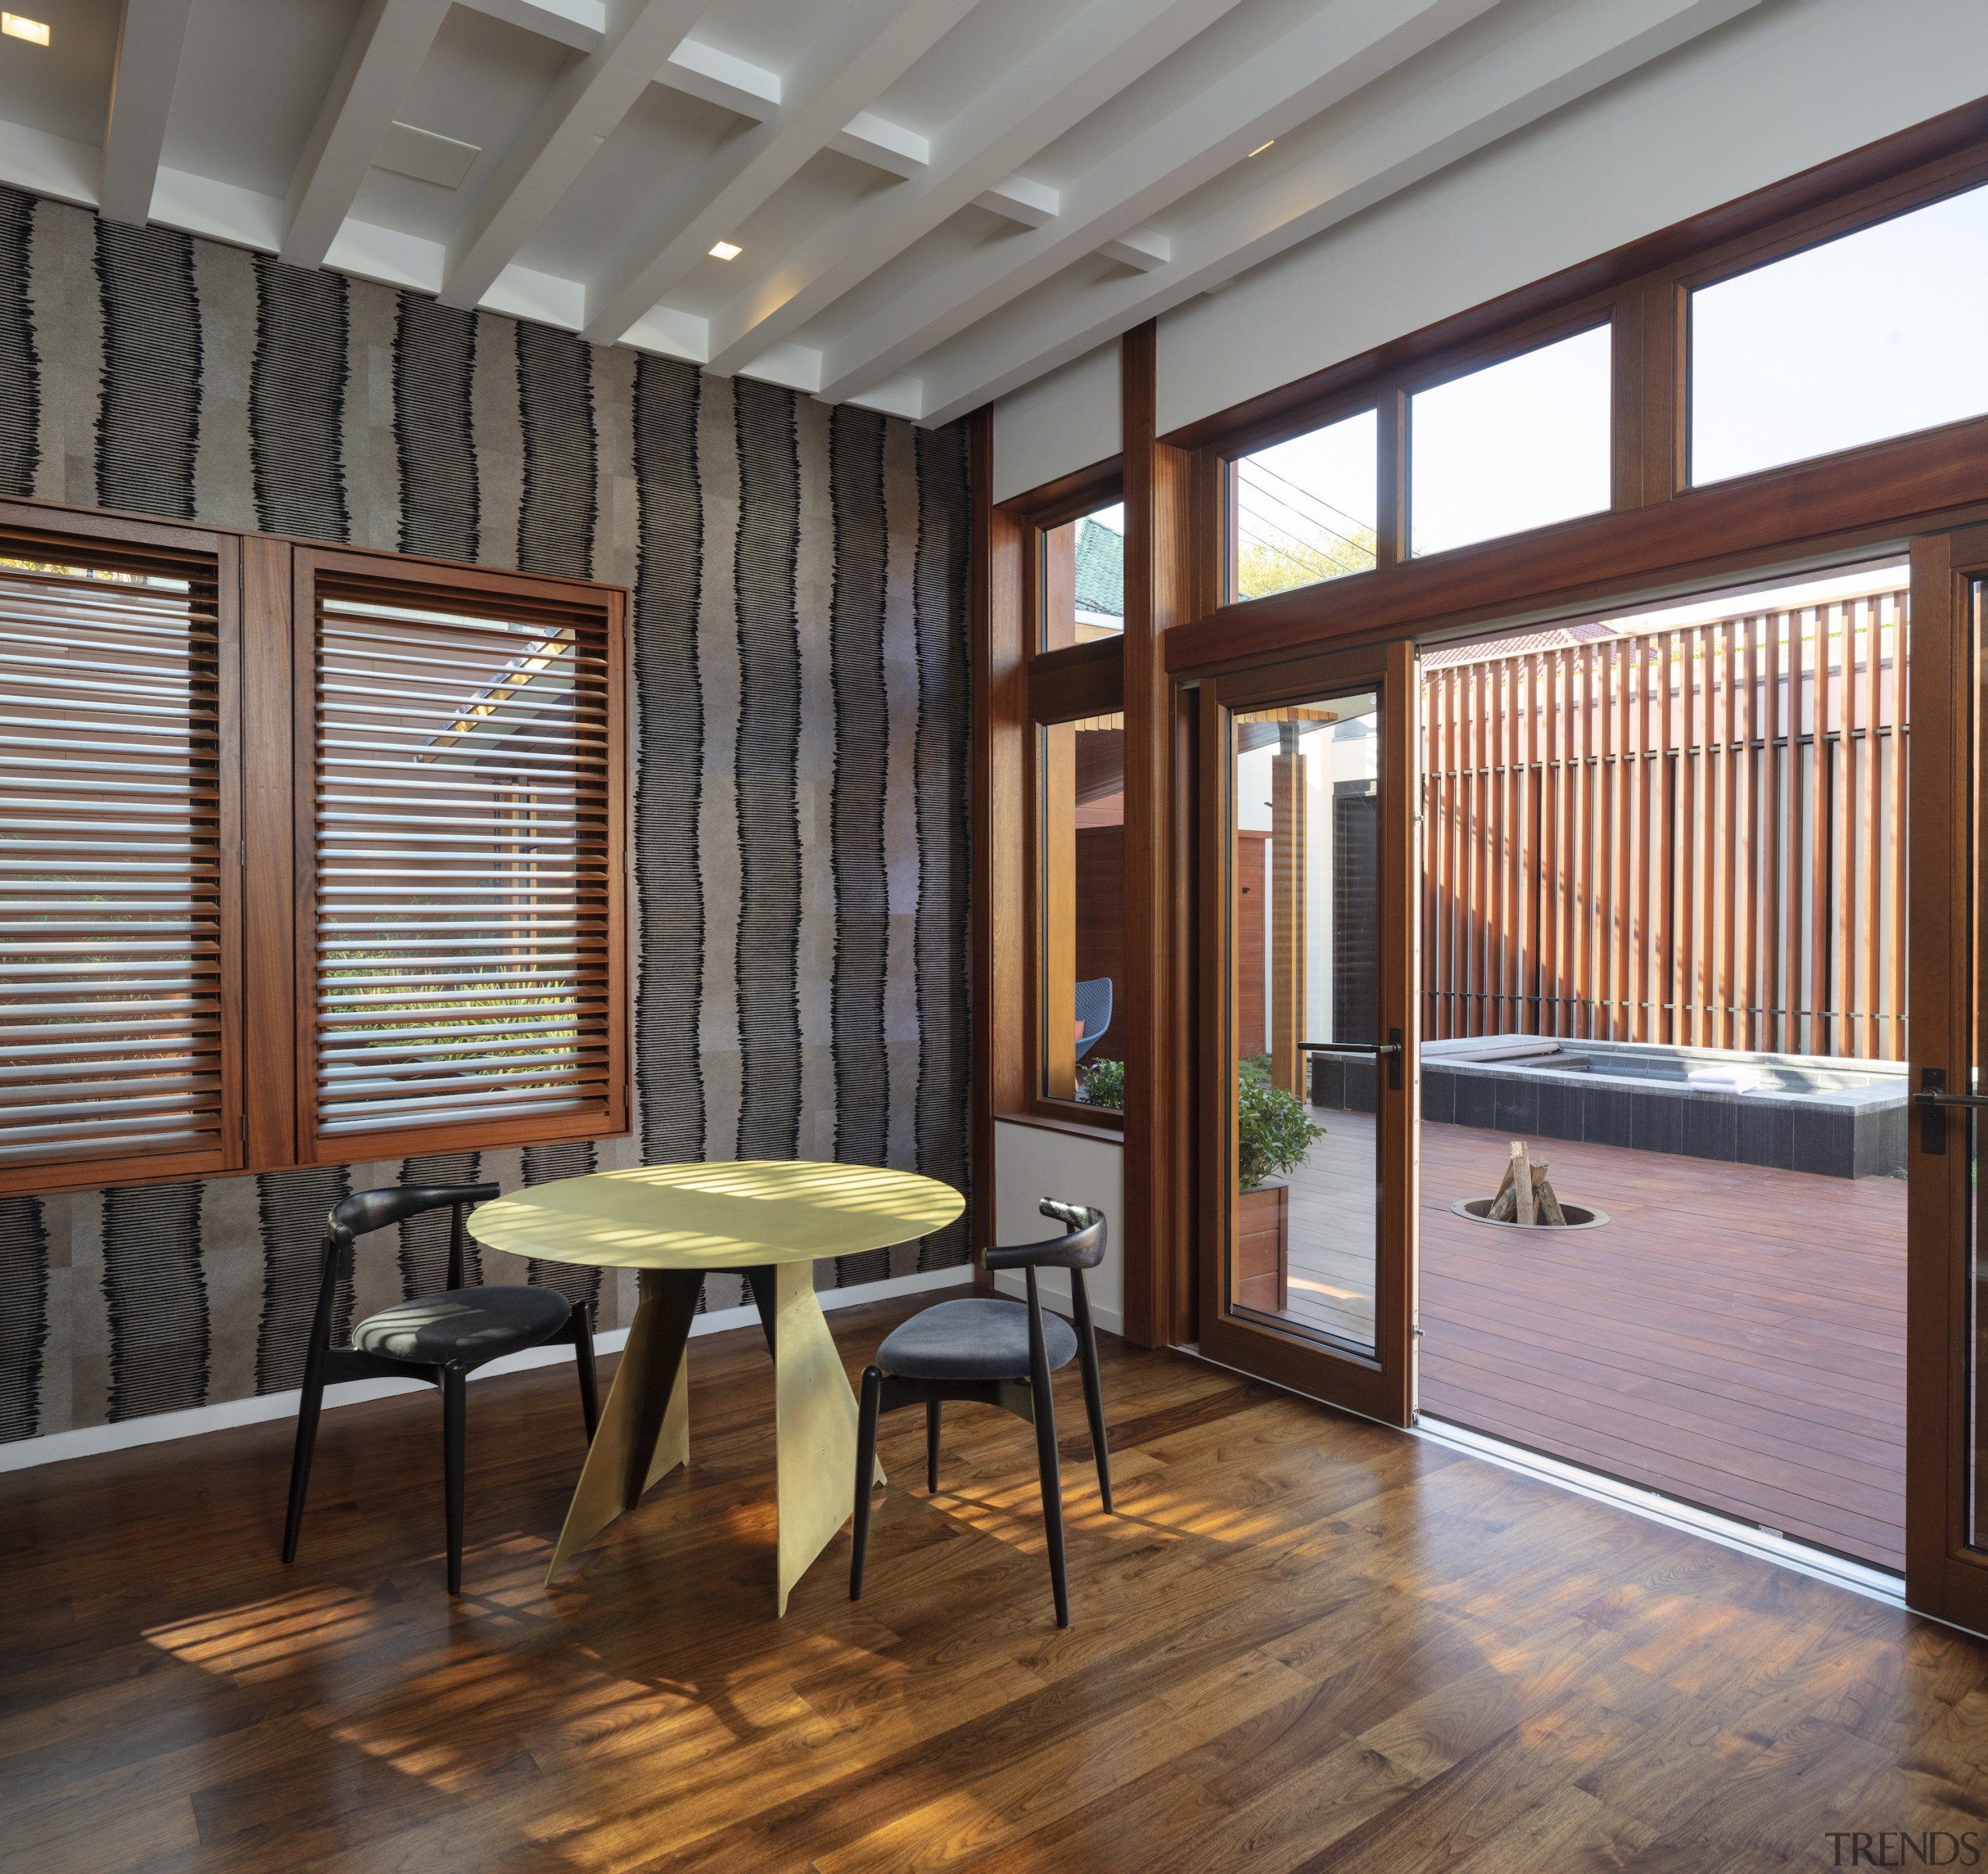 The generous main living space opens to the